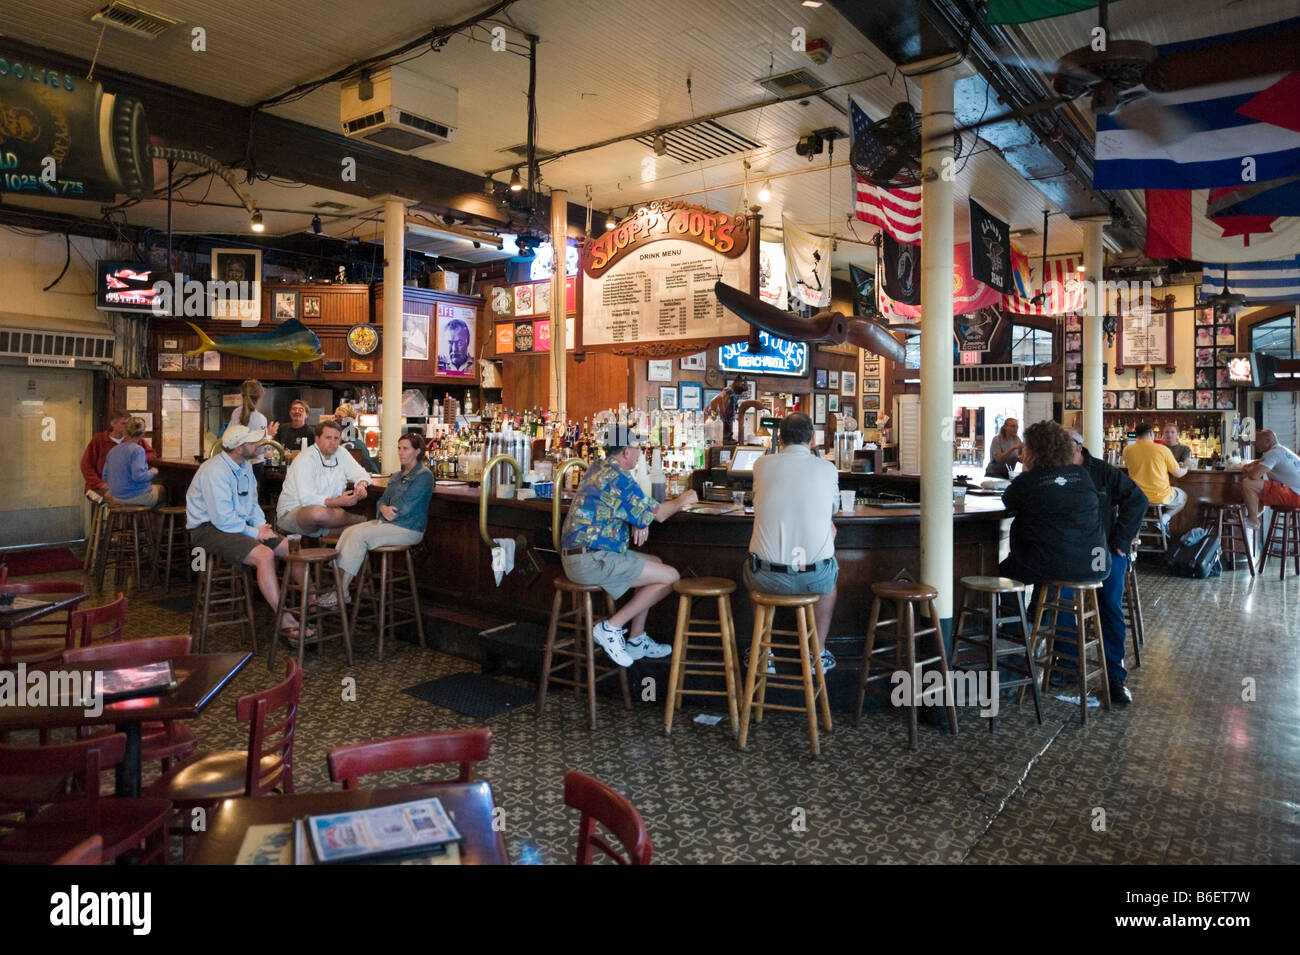 Interior of Sloppy Joe's Saloon, Duval Street in the old town, Key West, Florida Keys, USA - Stock Image